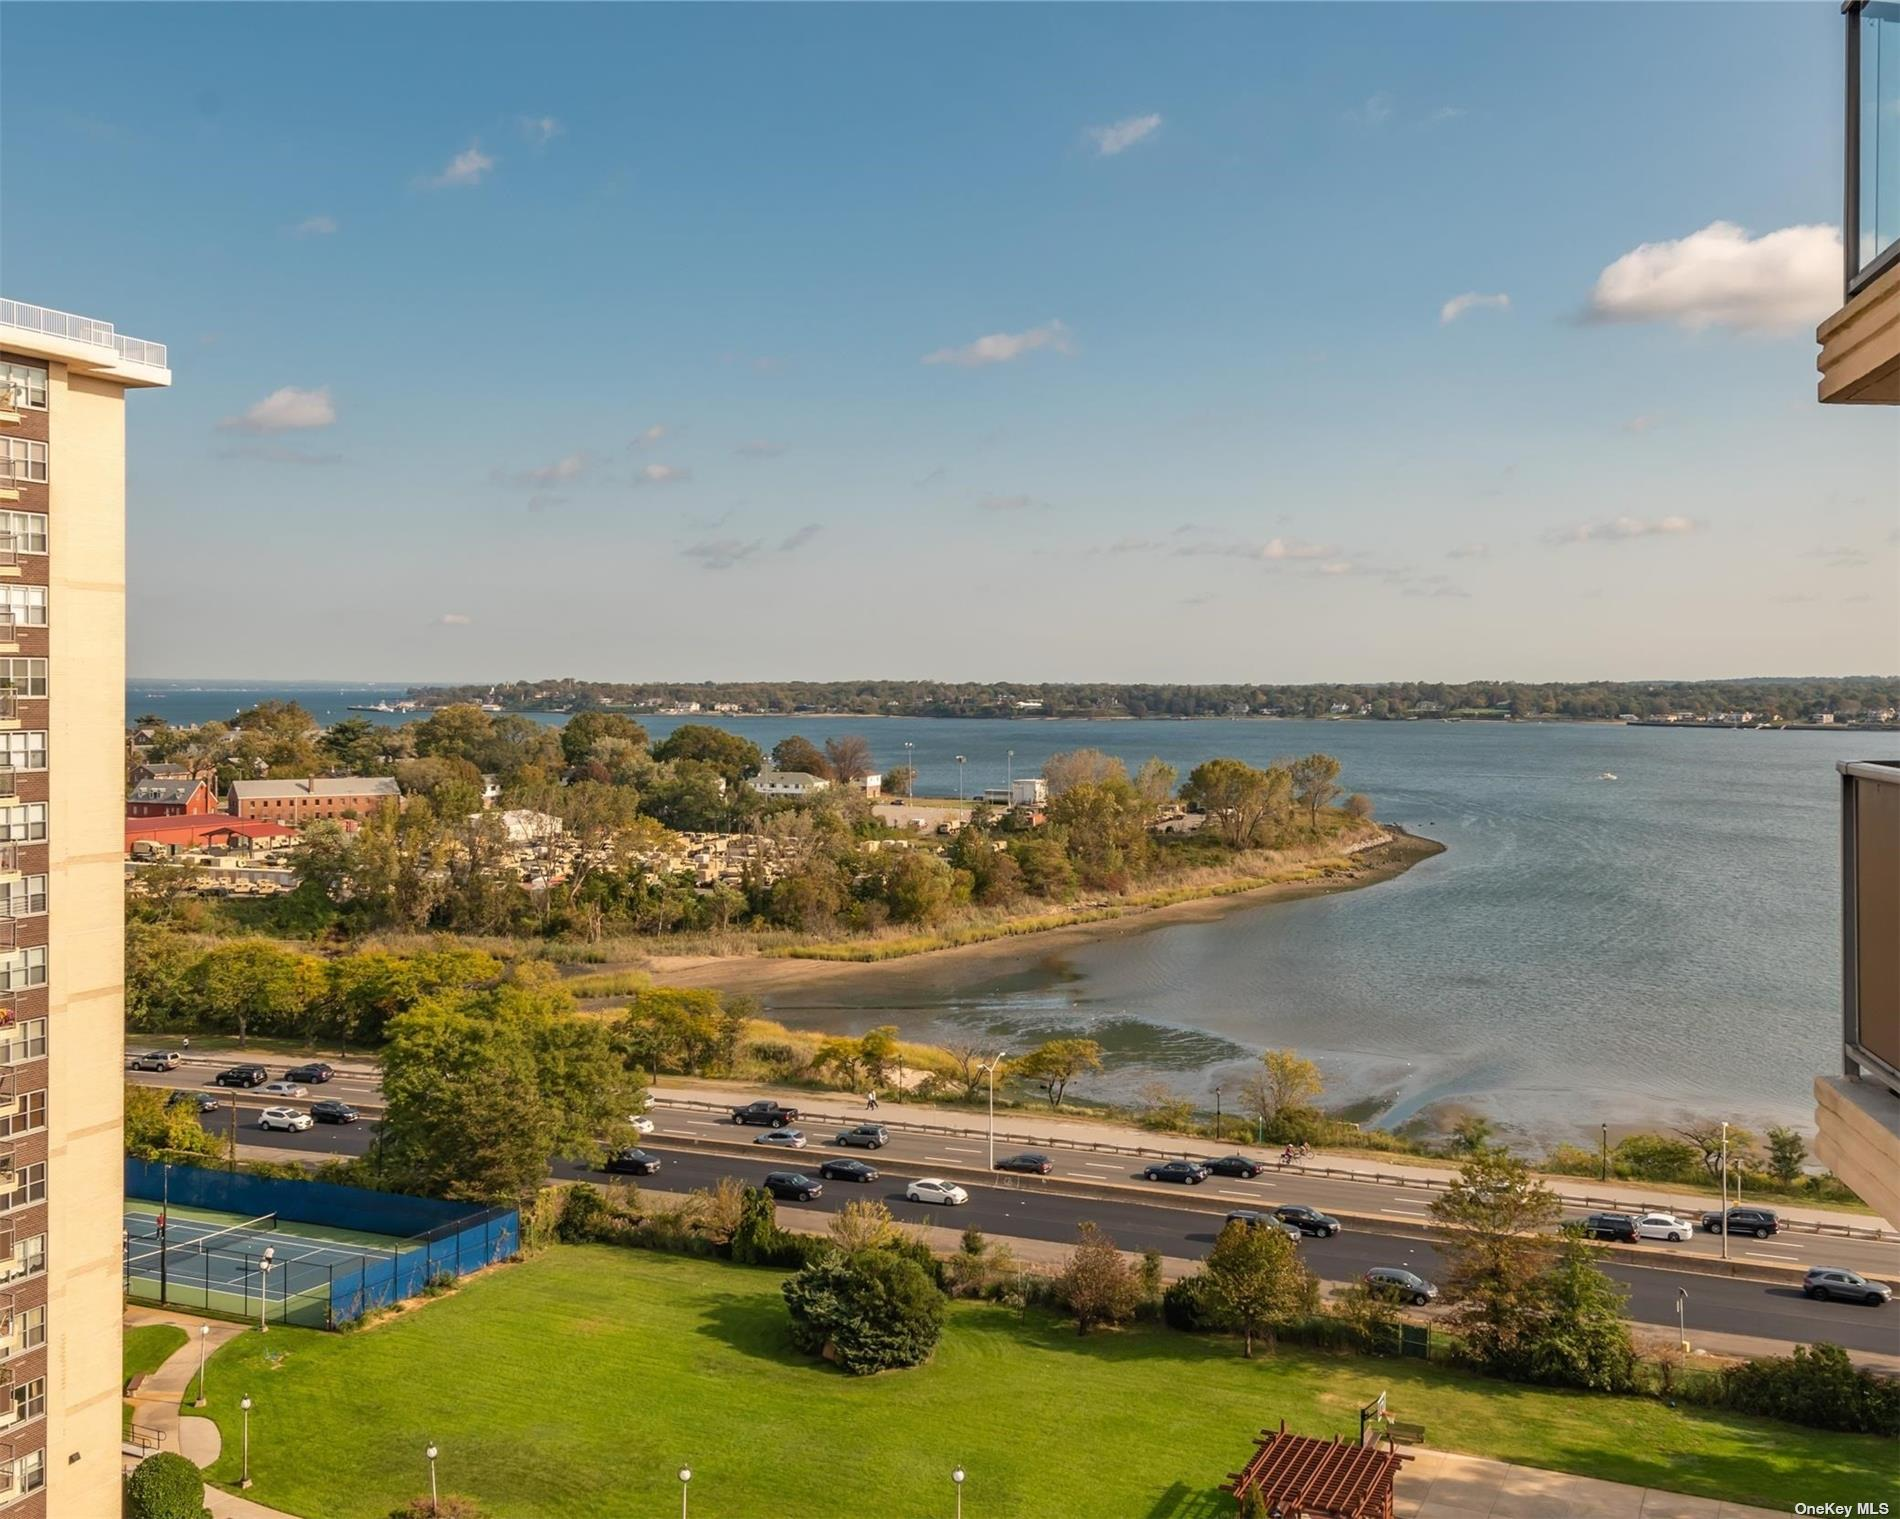 Renovated apartment on high floor with expansive views of Little Neck Bay, Whitestone Bridge and Manhattan Skyline!  Kitchen boasts custom wood cabinets, granite countertops and a full suite of high end appliances. Spacious living/dining area leads to your private balcony.  King sized bedroom has enormous walk-in closet.  Bathroom has marble vanity and ceramic tile. Hardwood floors, crown molding and generous closets throughout.  Amenities @ Towers @ Water's Edge include 24 hour doorman, concierge service, indoor parking garage ($), state of the art gym/spa with sauna and steam room, summer pool, tennis, restaurant, salon, dry cleaner and laundry.  You will love living here!